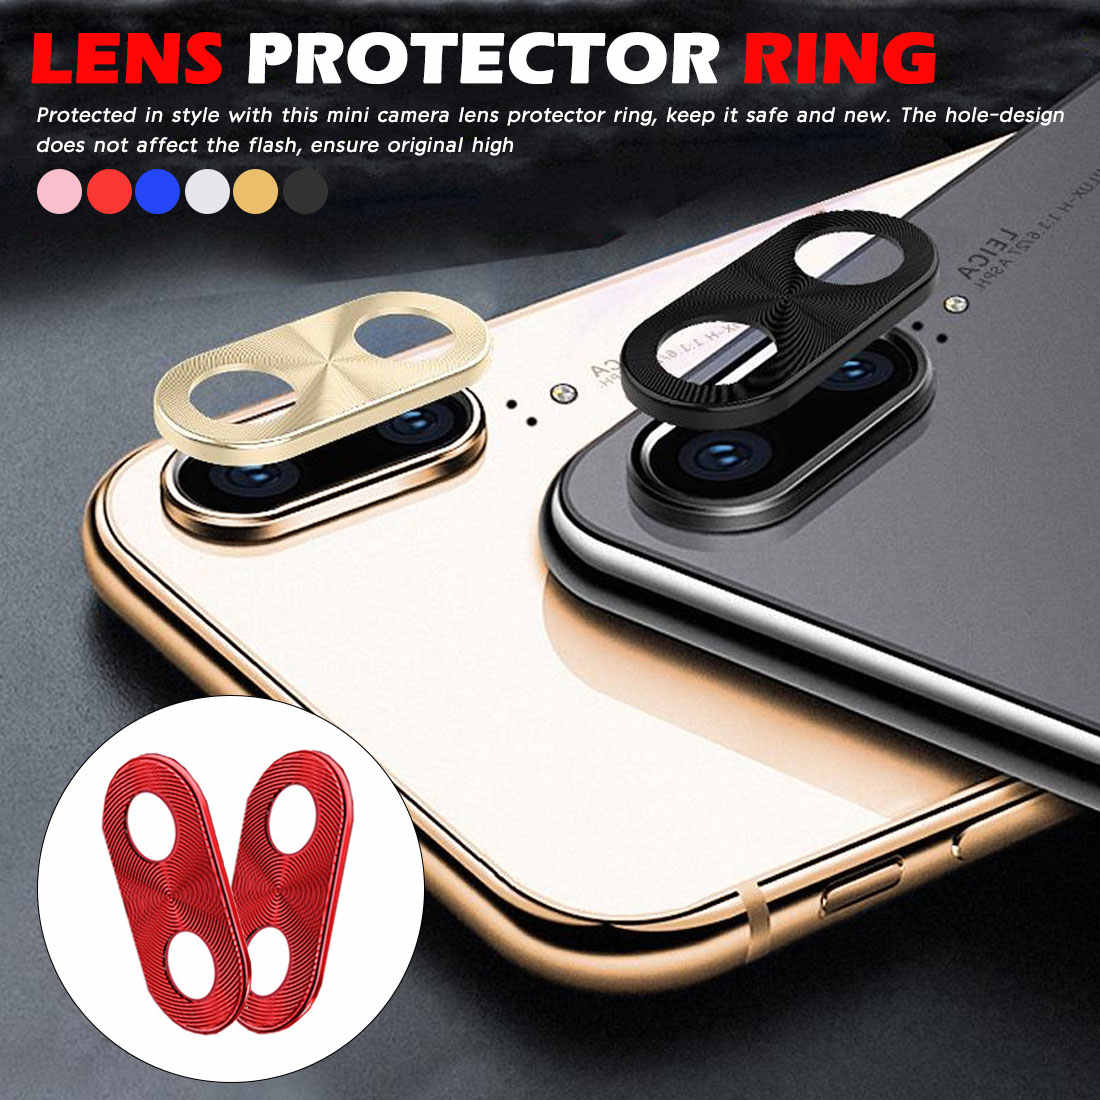 SFor Huawei P20 P30 Lite Mate 20 Pro Camera Lens Protector Metal Plating on Huawei Nova 4 3 3i 5 5i P Smart Plus 2019 Case Cover